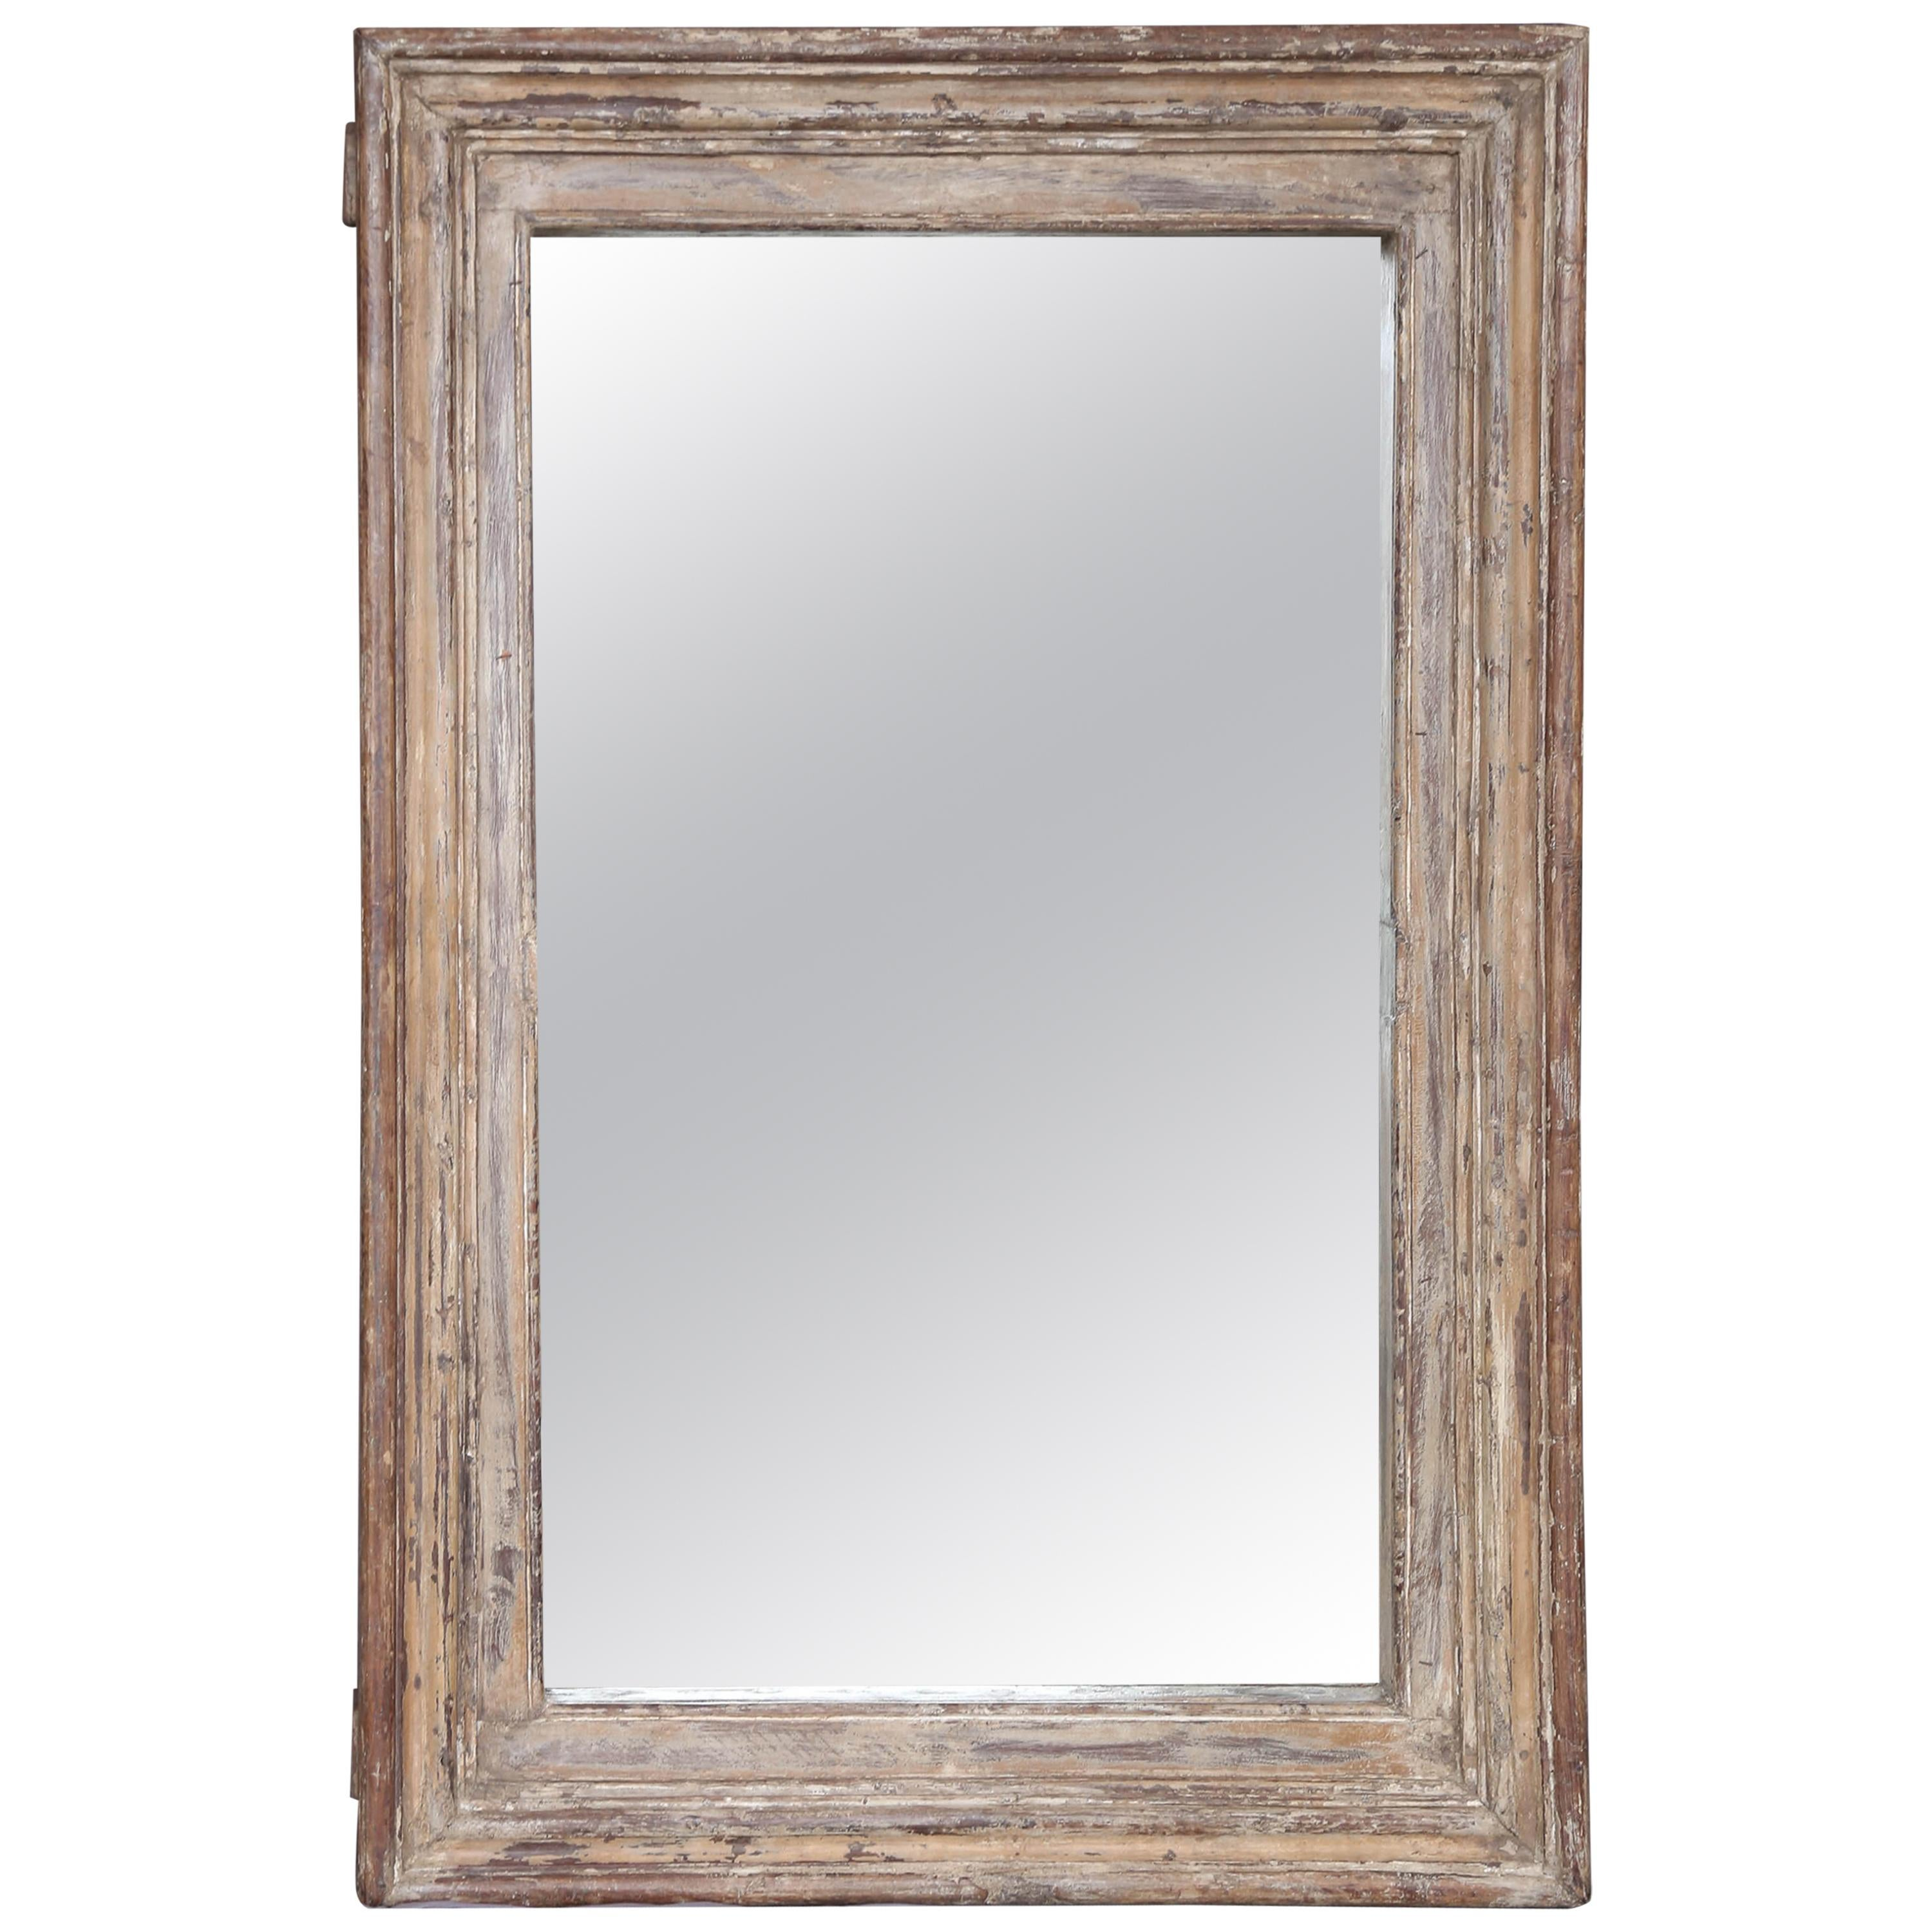 Carved Teak Wood Window Frame Of 1840s Home Used As Frame For This Mirror